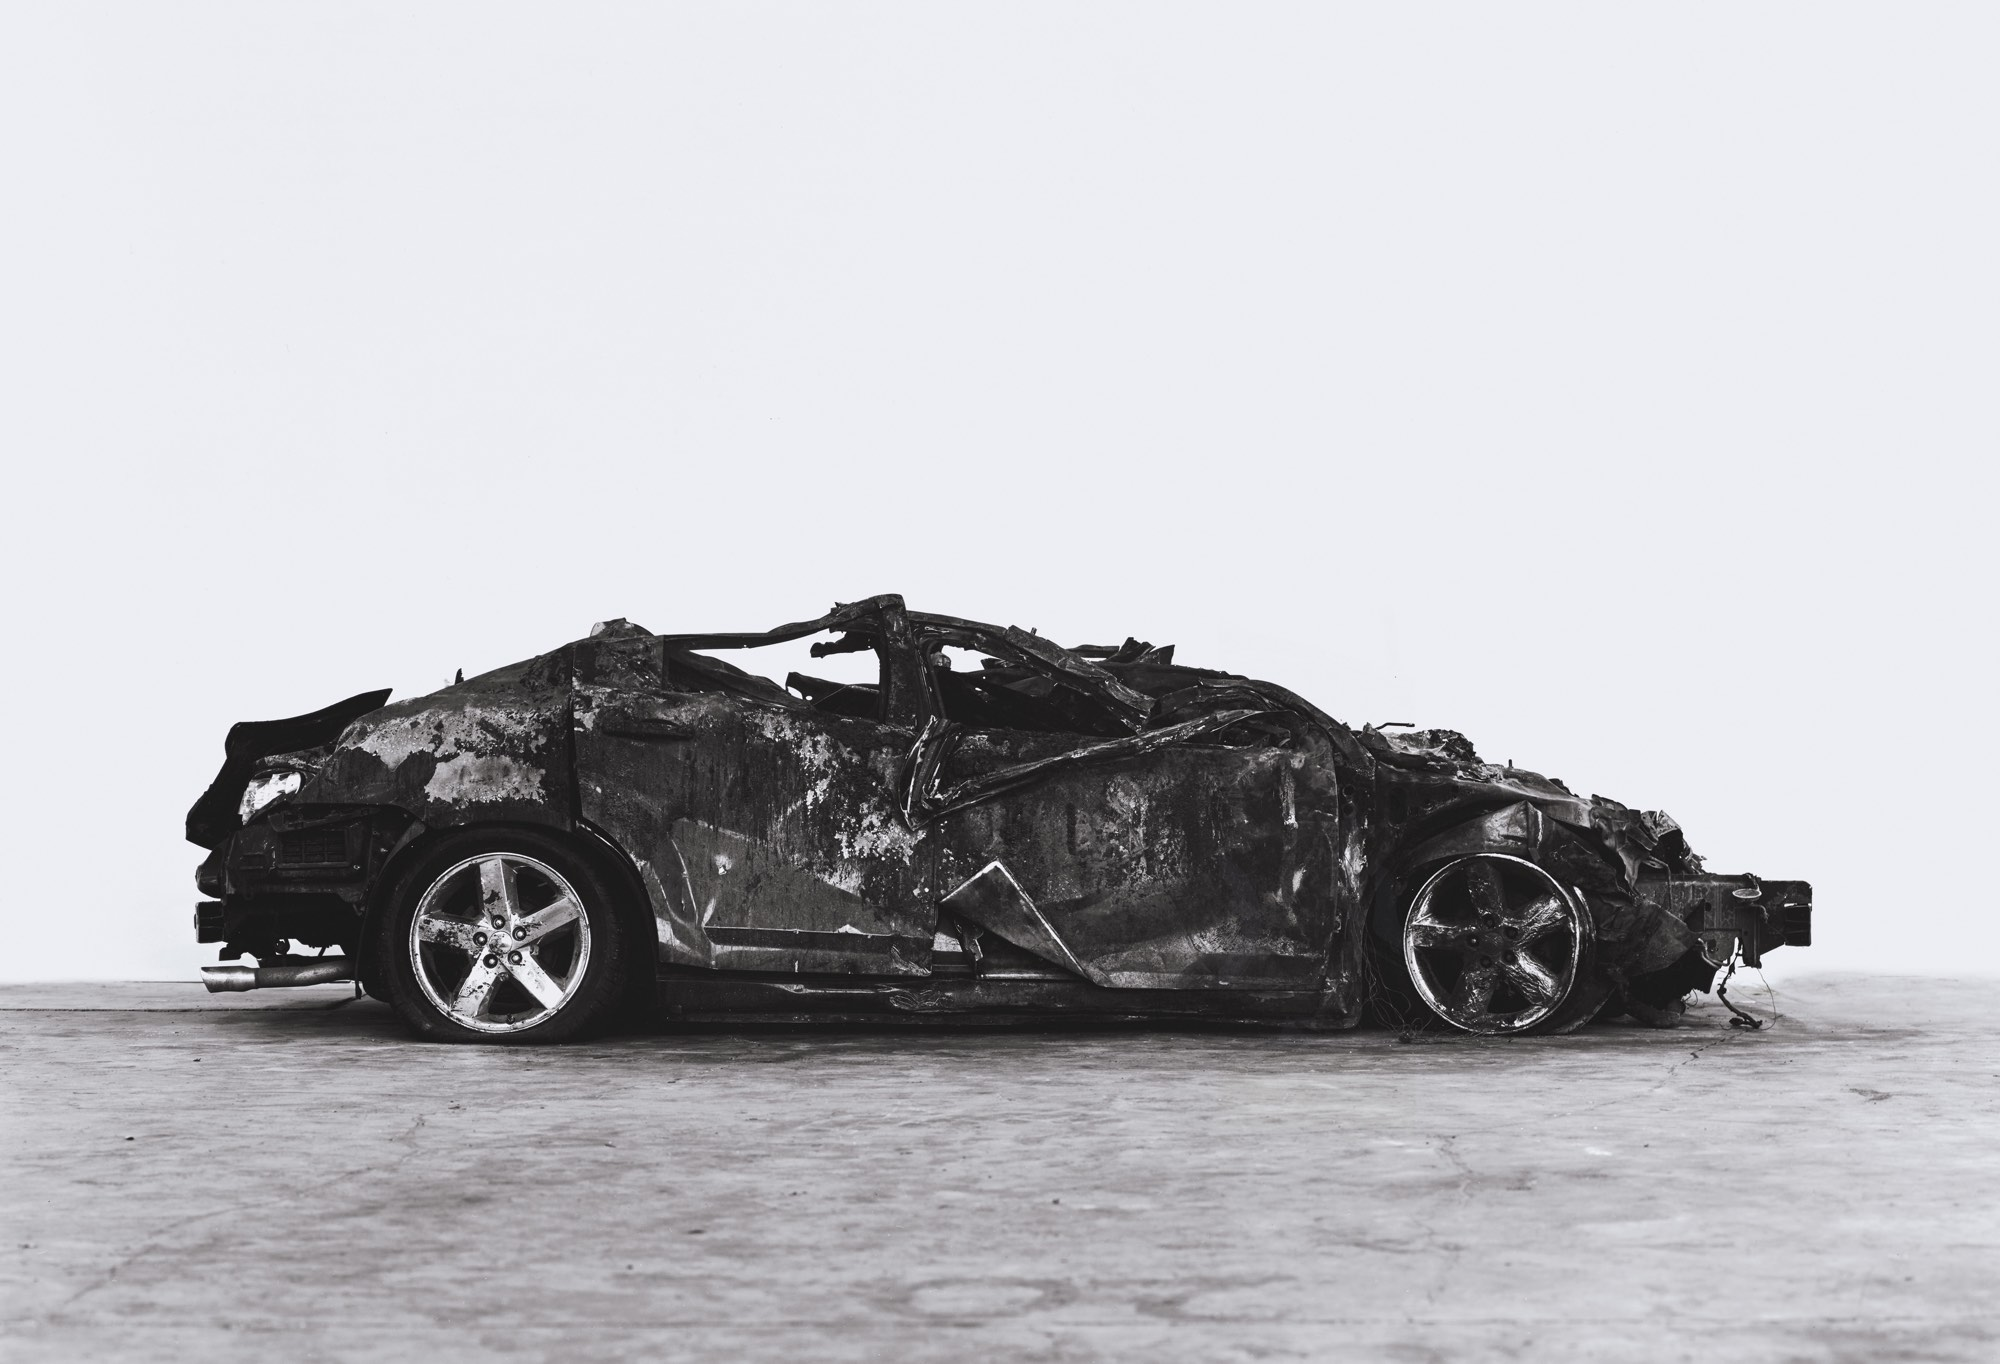 Richard Learoyd, Crashed and Burned, 2017, courtesy of the artist and Fraenkel Gallery, San Francisco